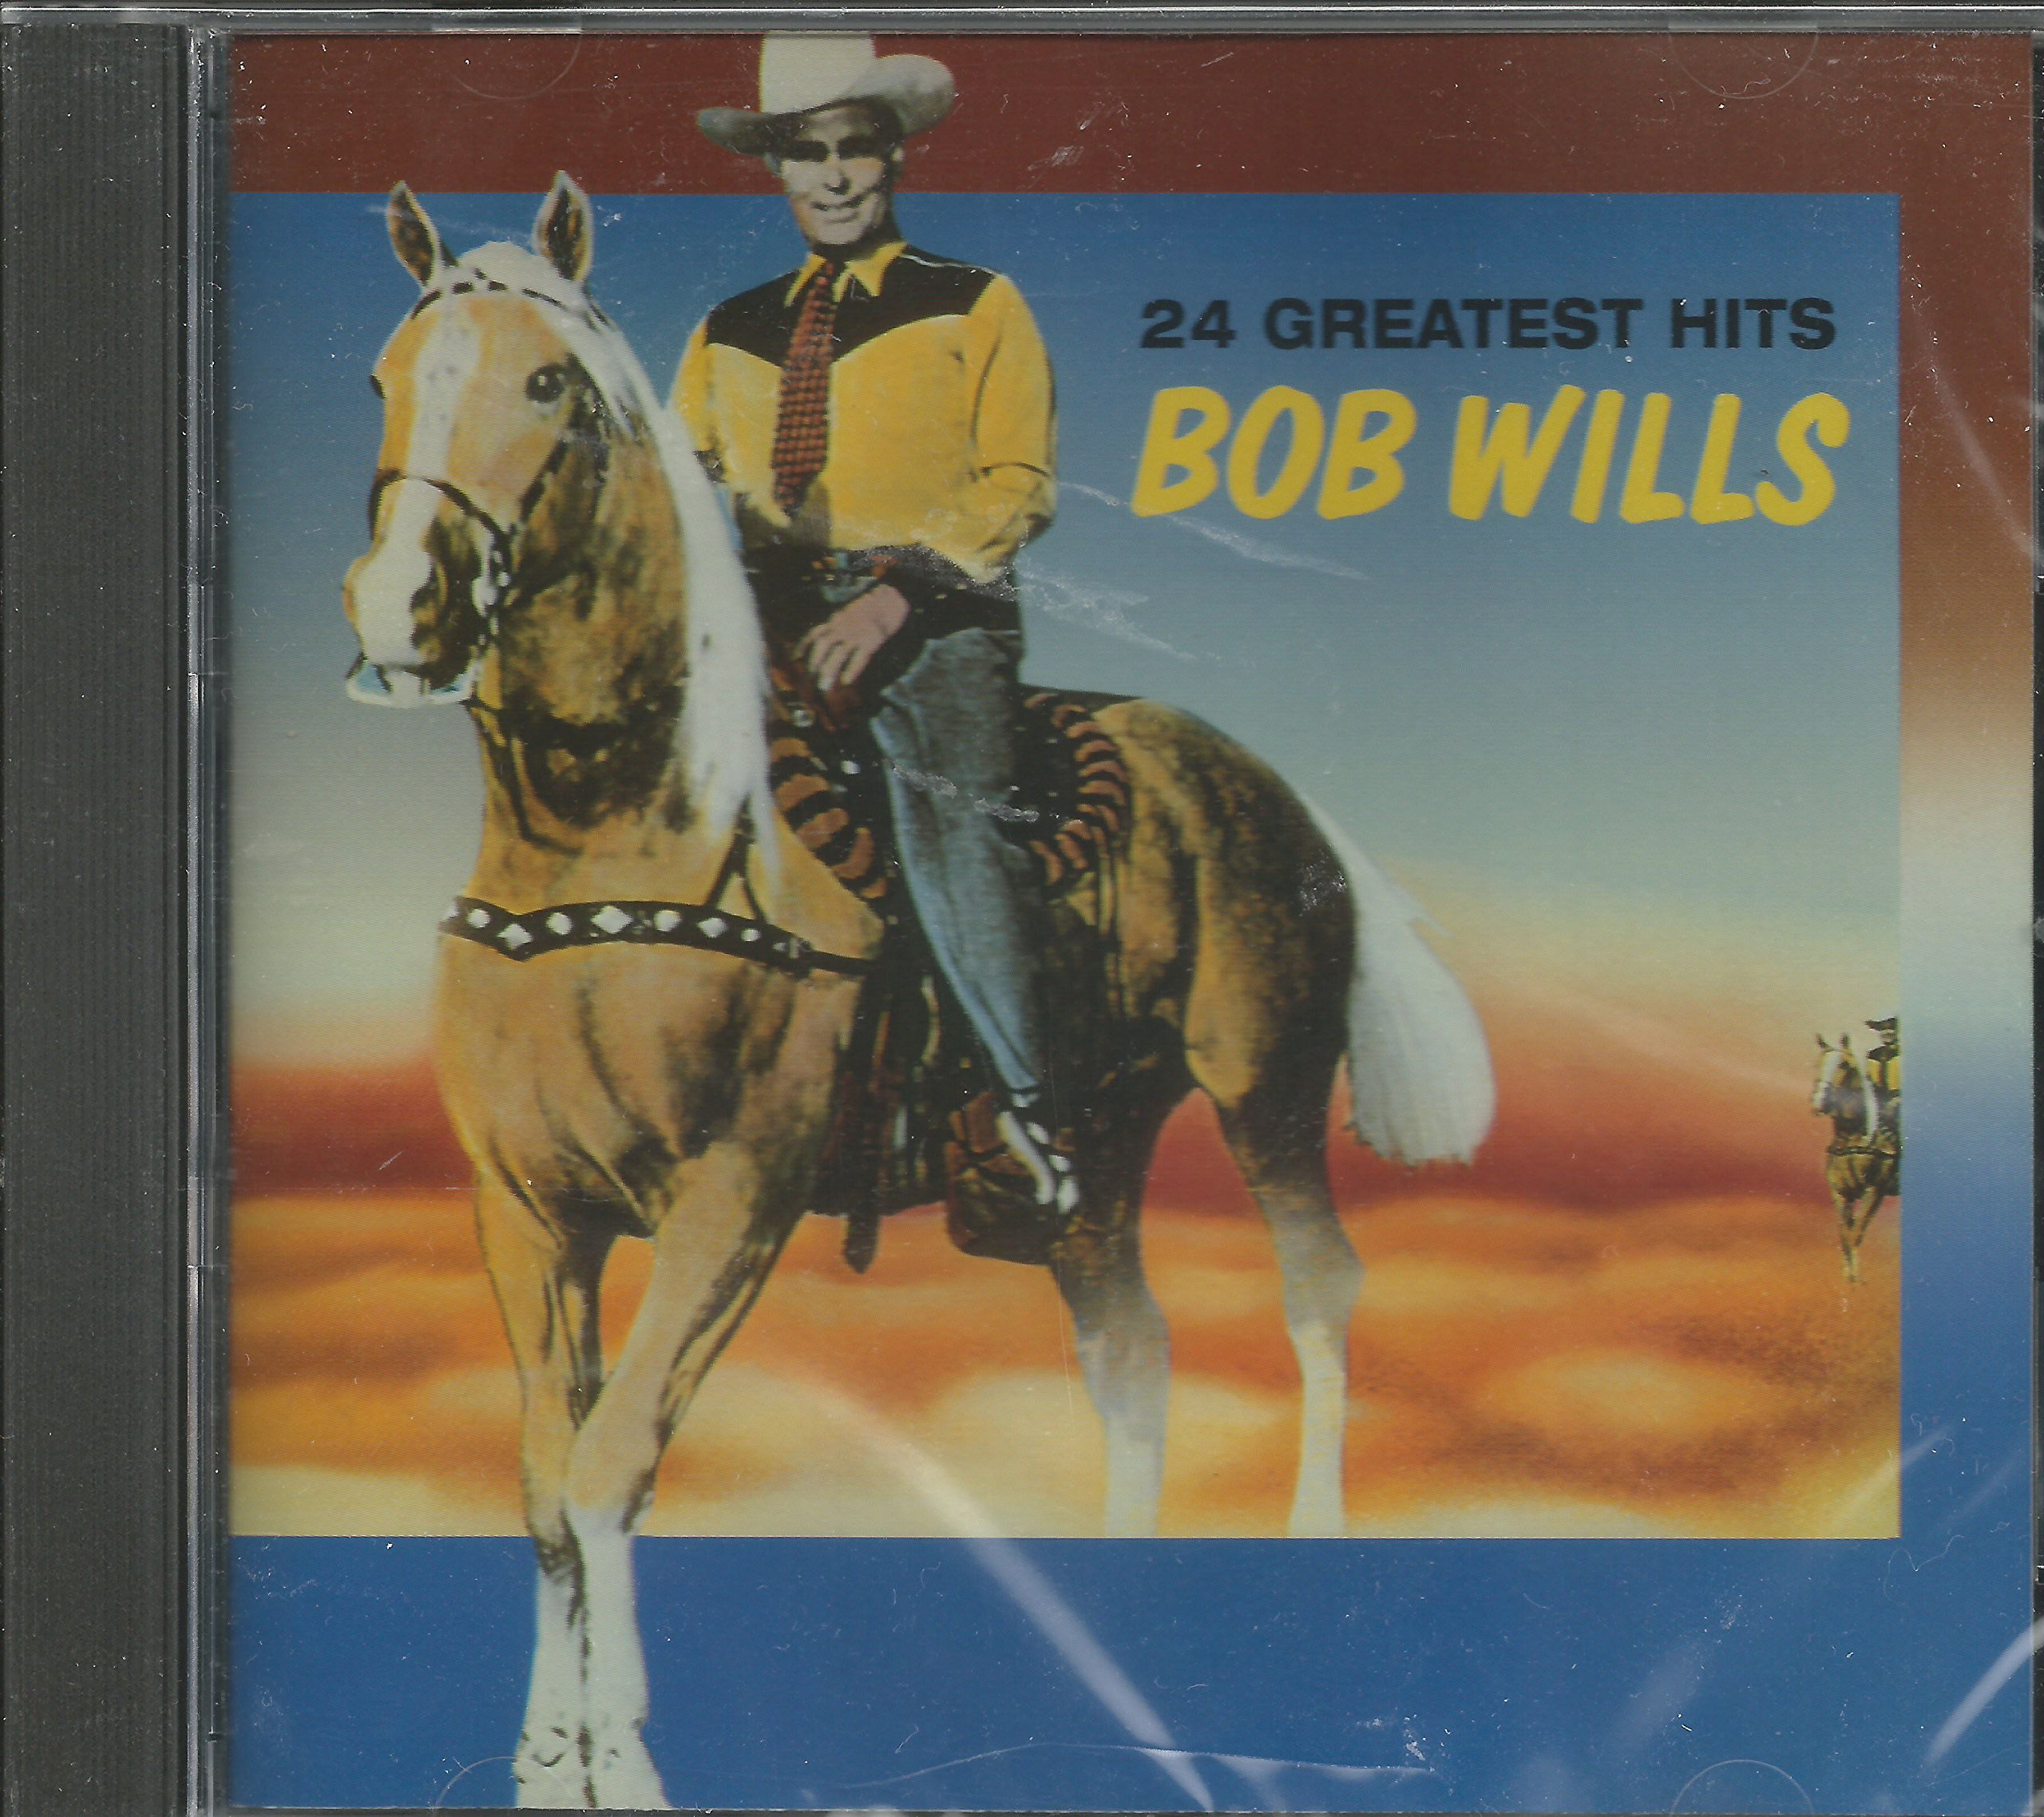 Bob Wills & His Texas Playboys - 24 Greatest Hits by Polygram Records